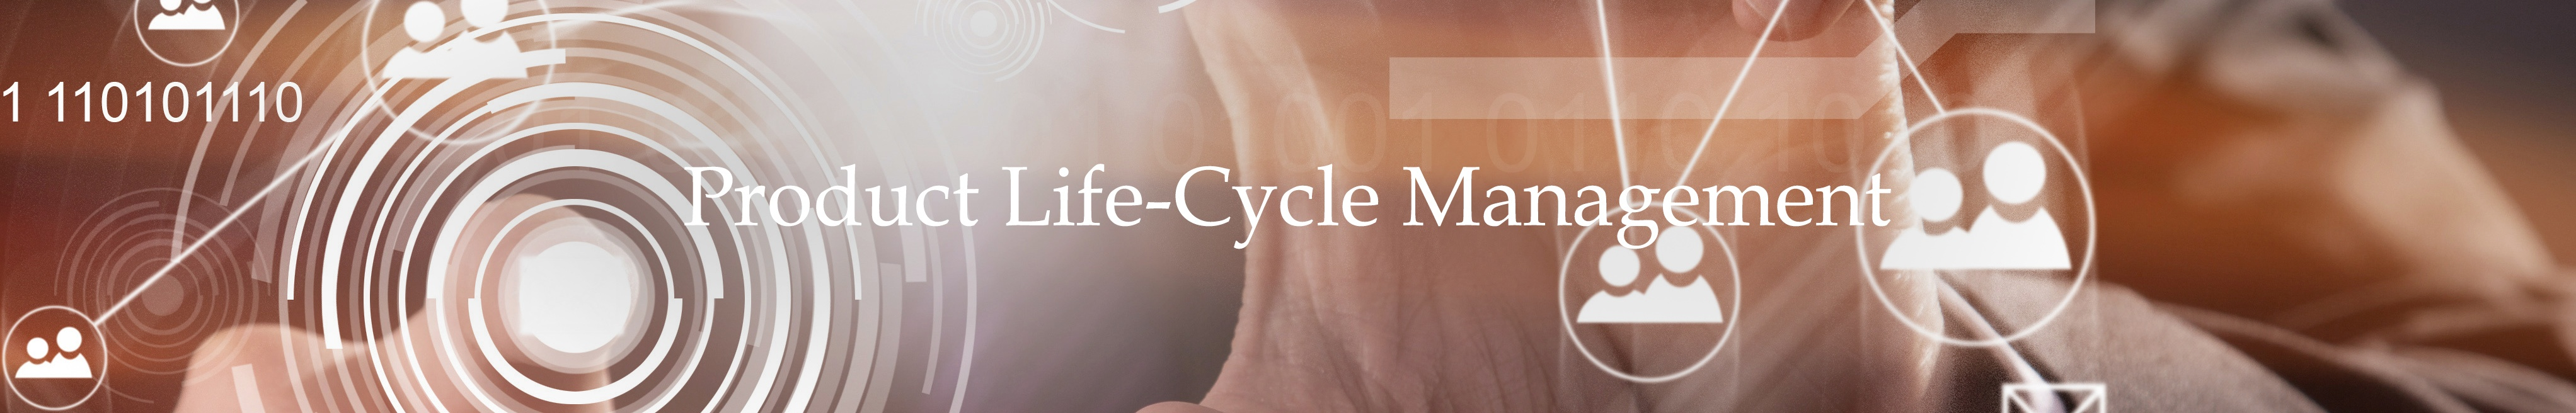 4. Product-Lifecycle-Mgt.jpg